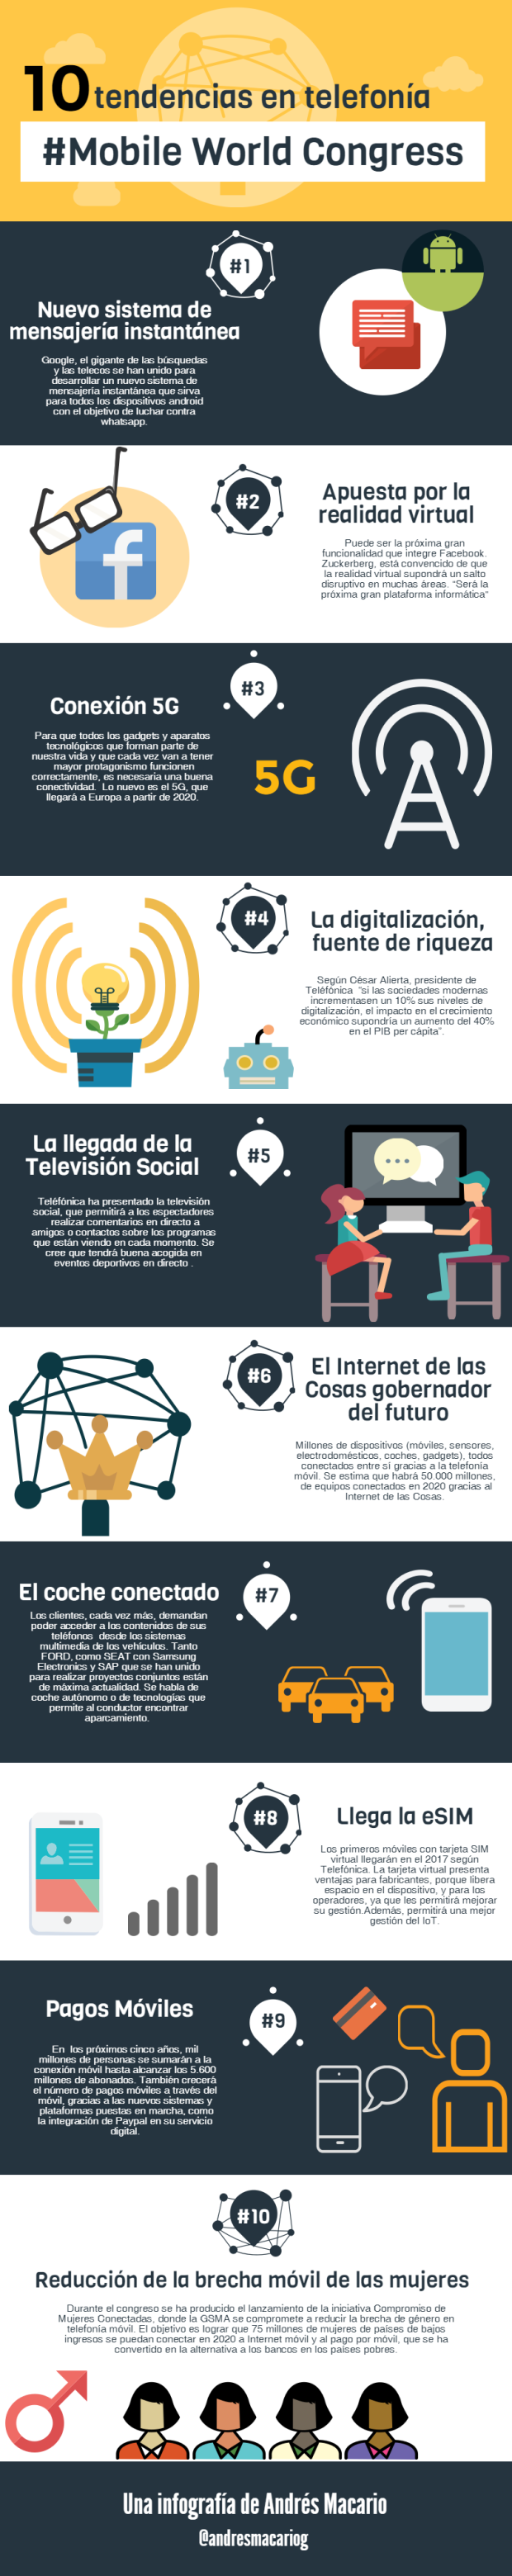 10 Tendencias Mobile World Congress Infografia Andres Macario.png